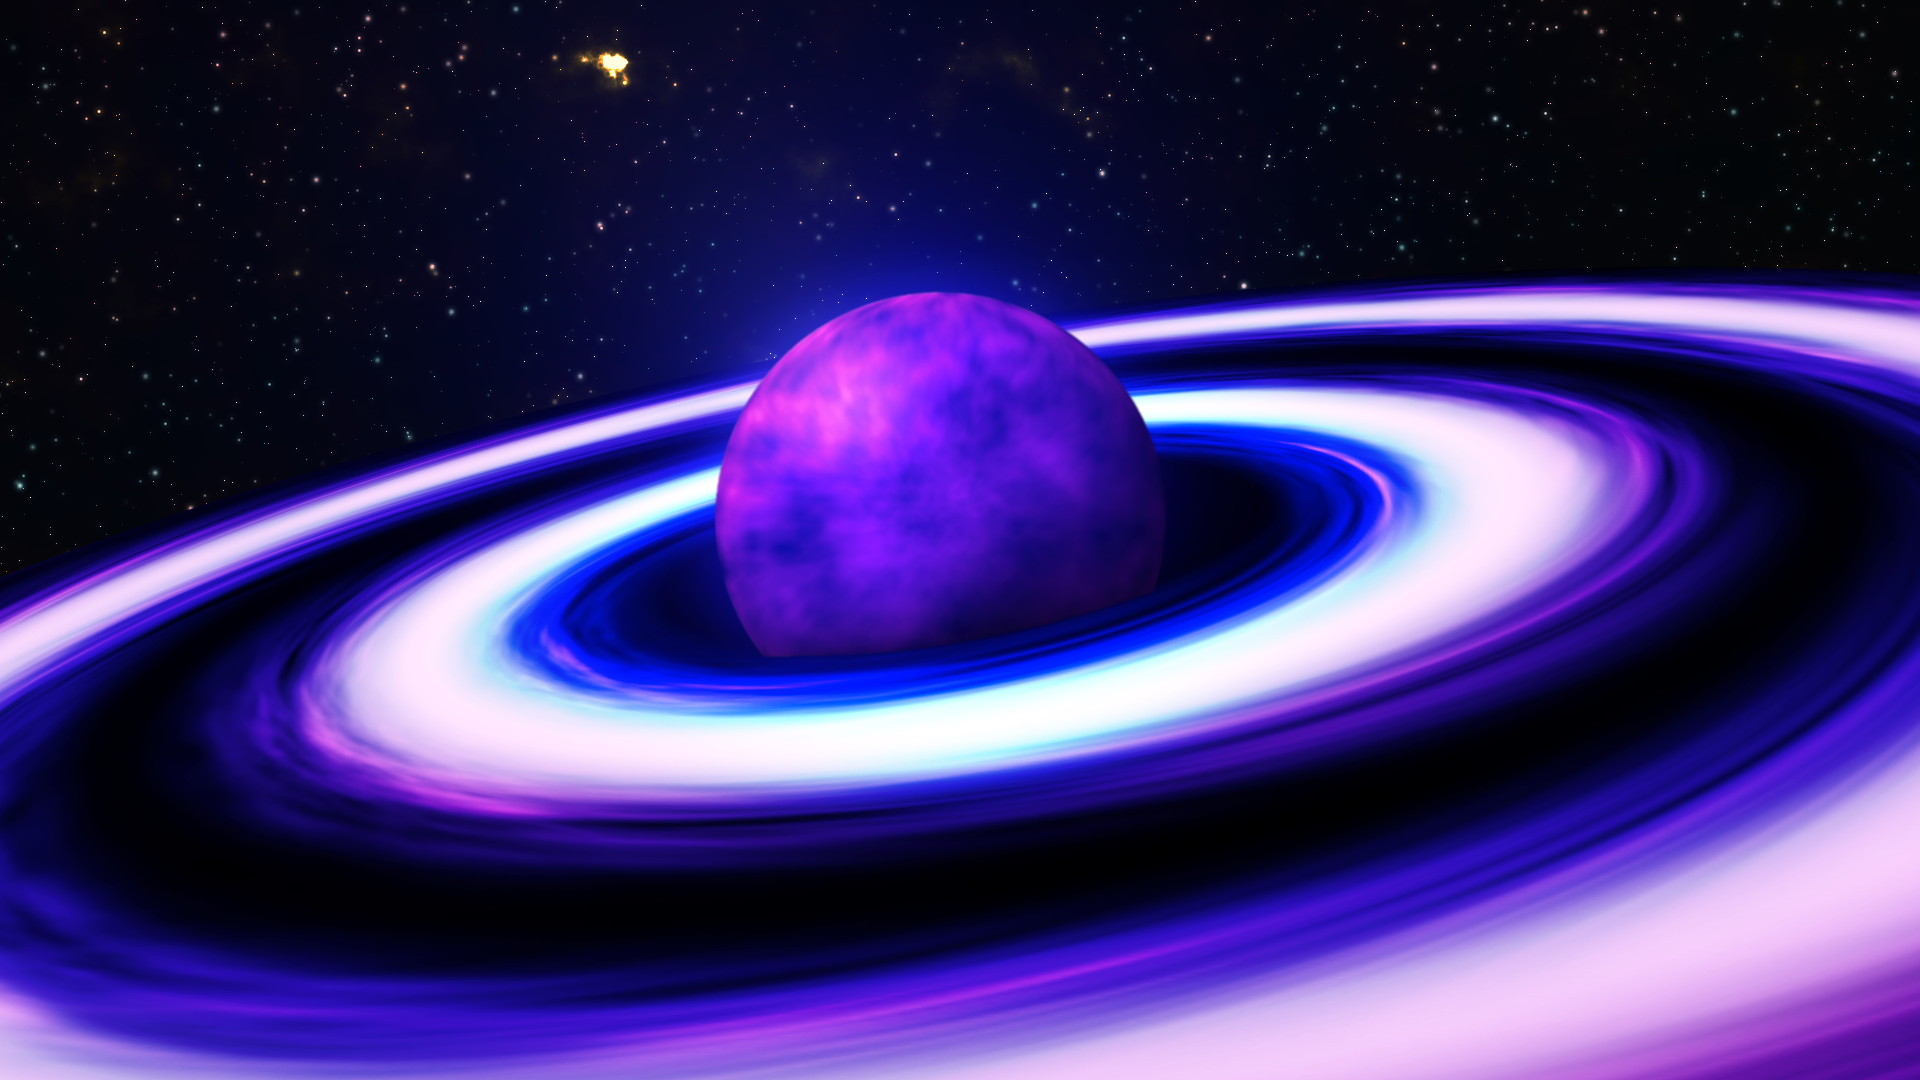 Pin Purple Planets On Colorful Sky Wallpaper 1366x768 on ...